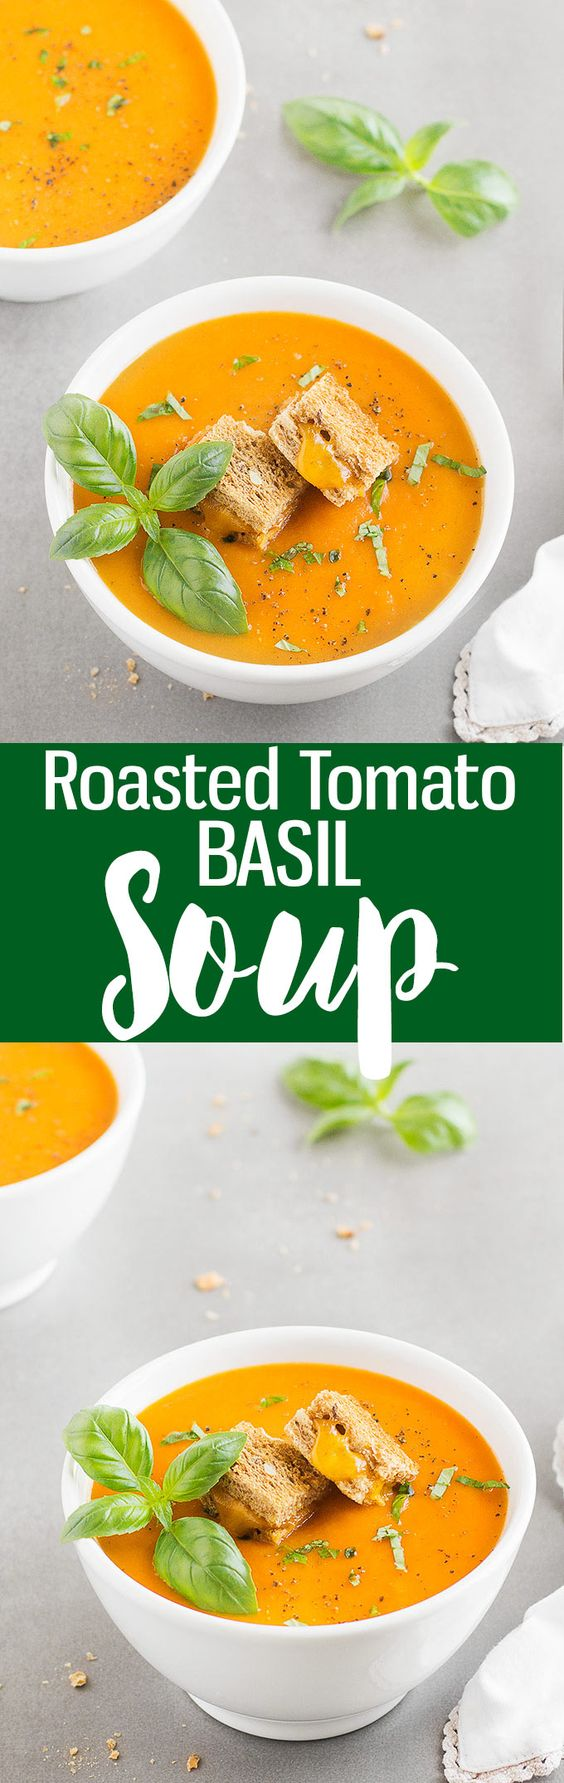 Roasted tomato basil soup, Tomato basil soup and Roasted tomatoes on ...